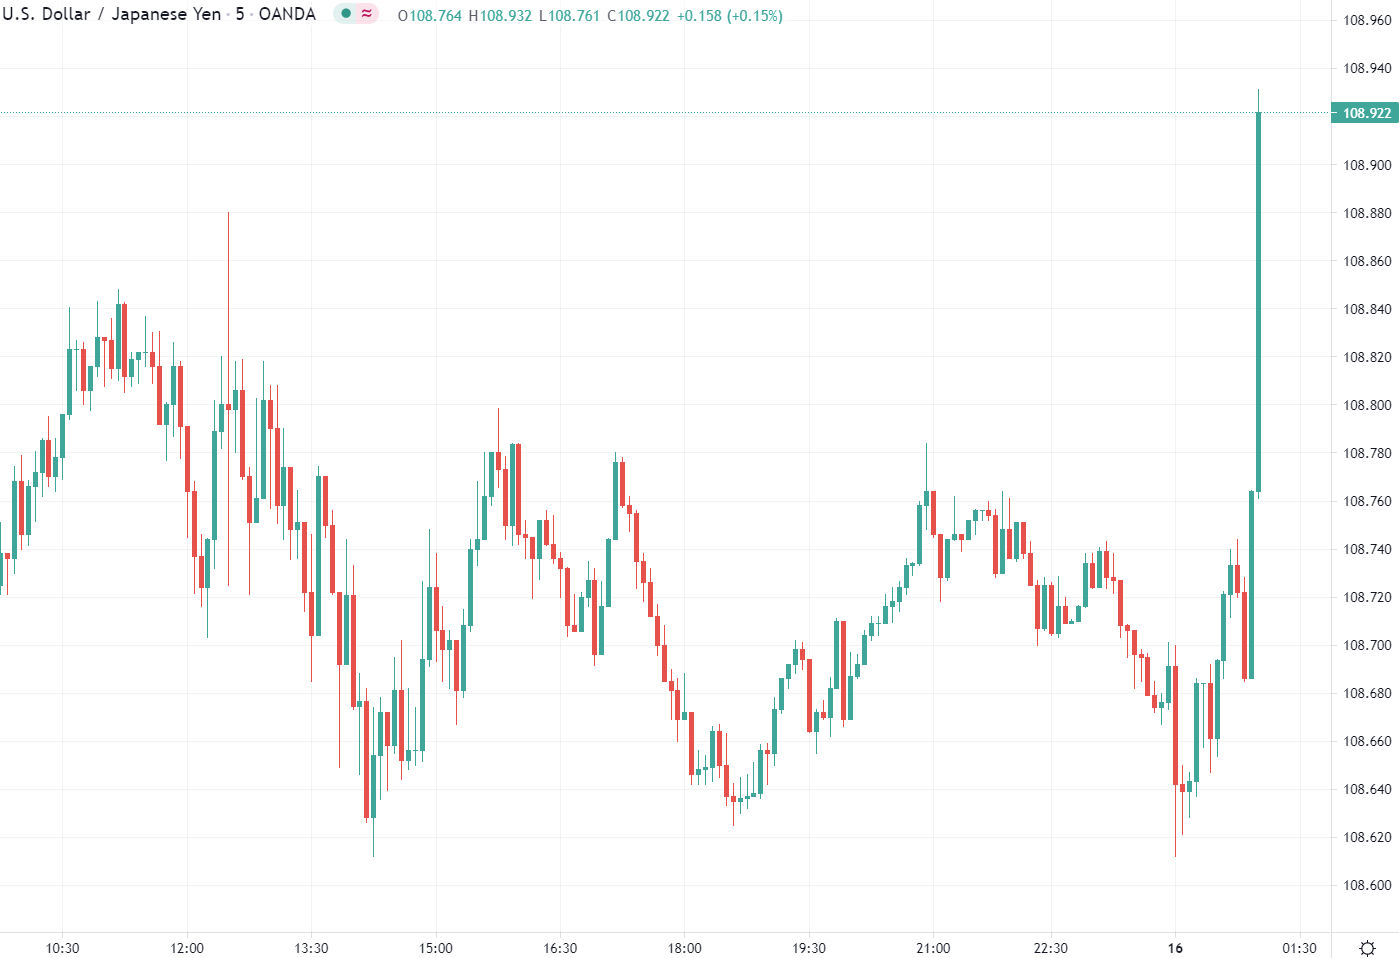 Major FX is all a little lower against the US dollar in Asia morning trade.